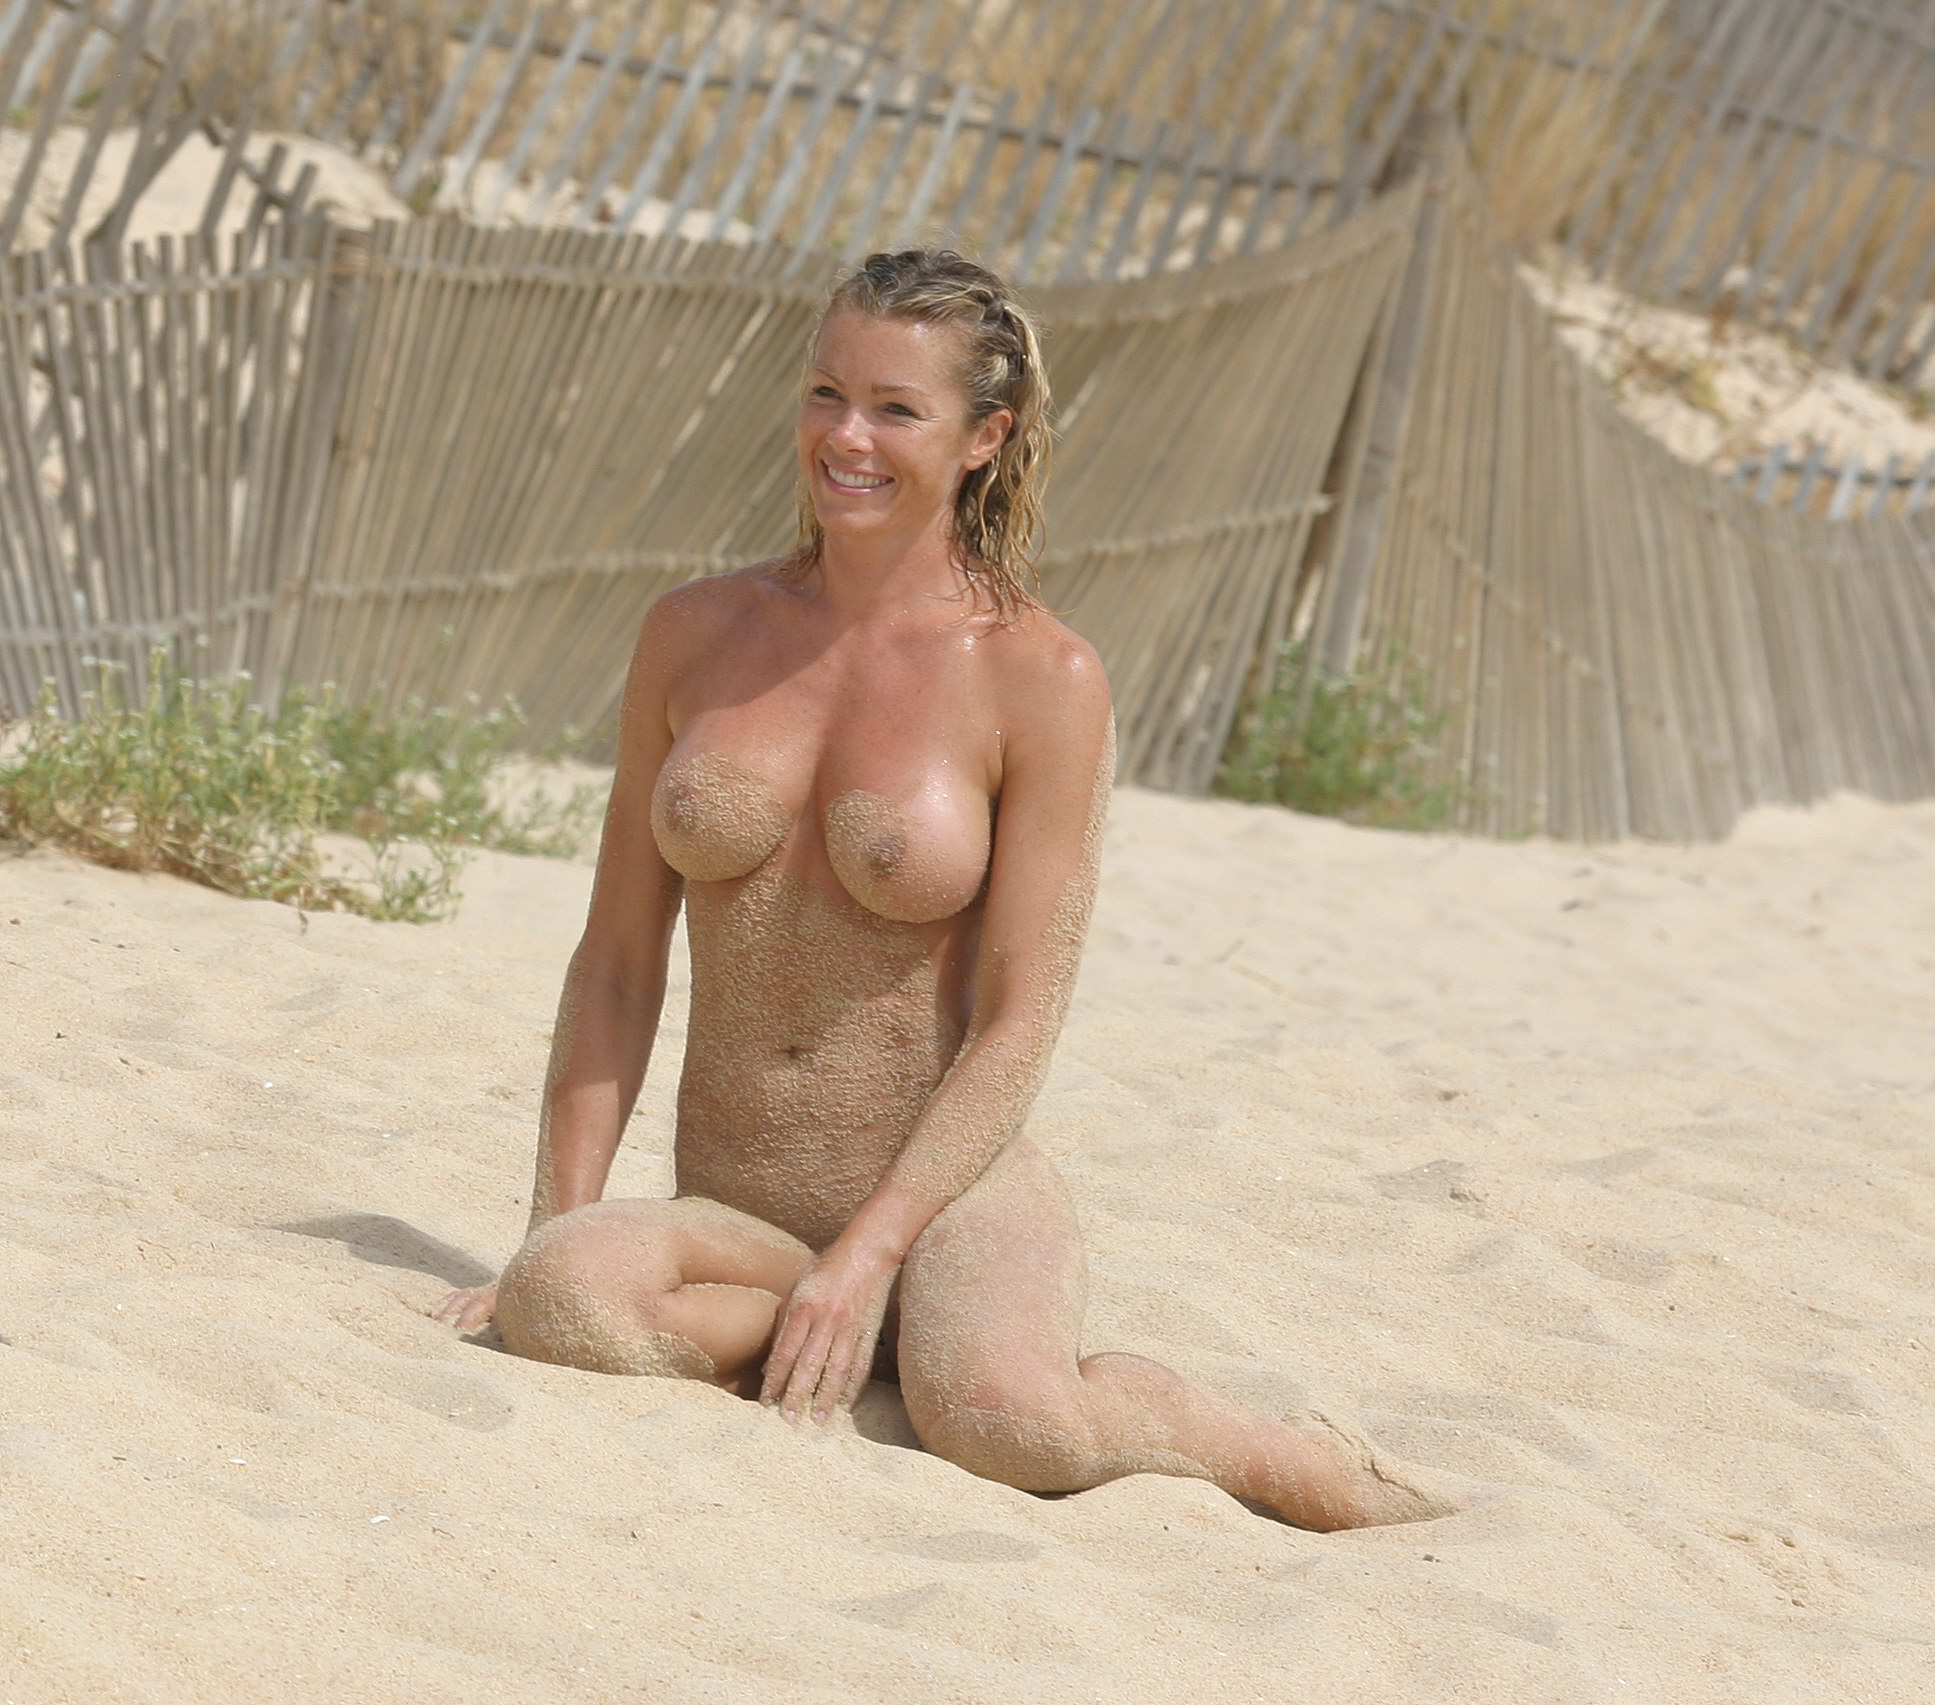 Confirm. agree Nell mcandrew nude sorry, that